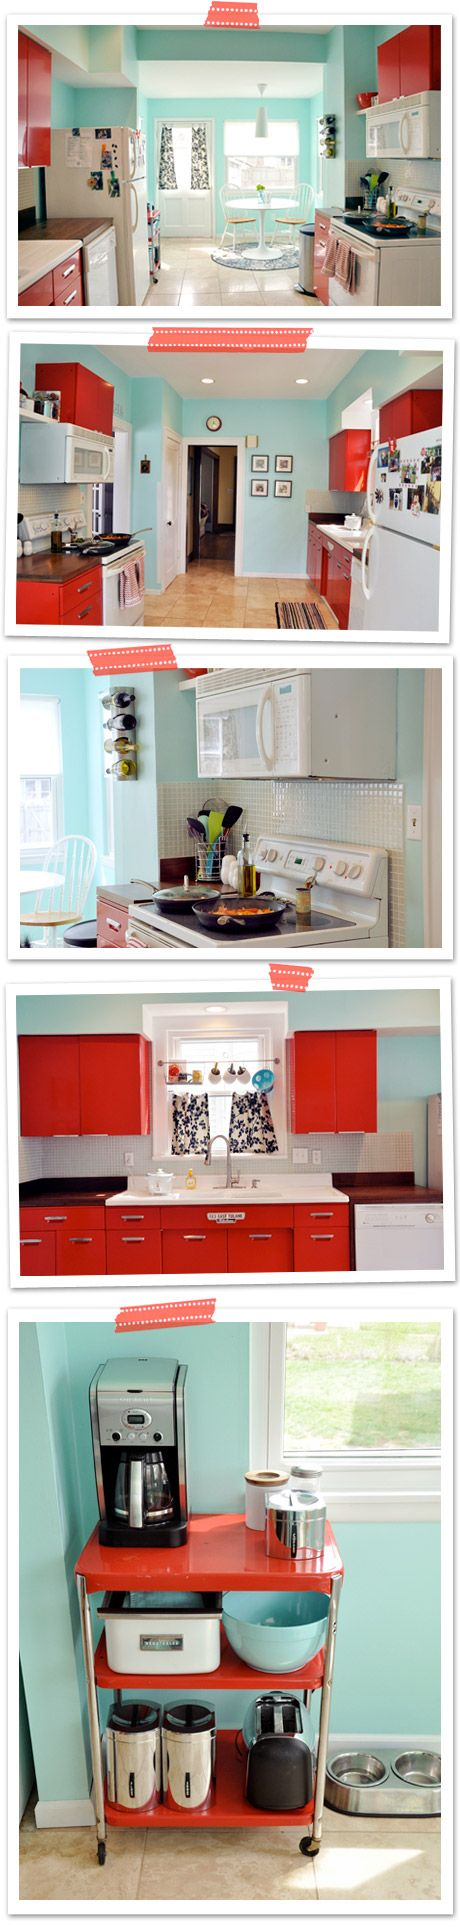 Coral kitchen walls with white cabinets orange kitchen walls coral - I Love This Color Scheme For A Kitchen Though I Would Do A Majority Of